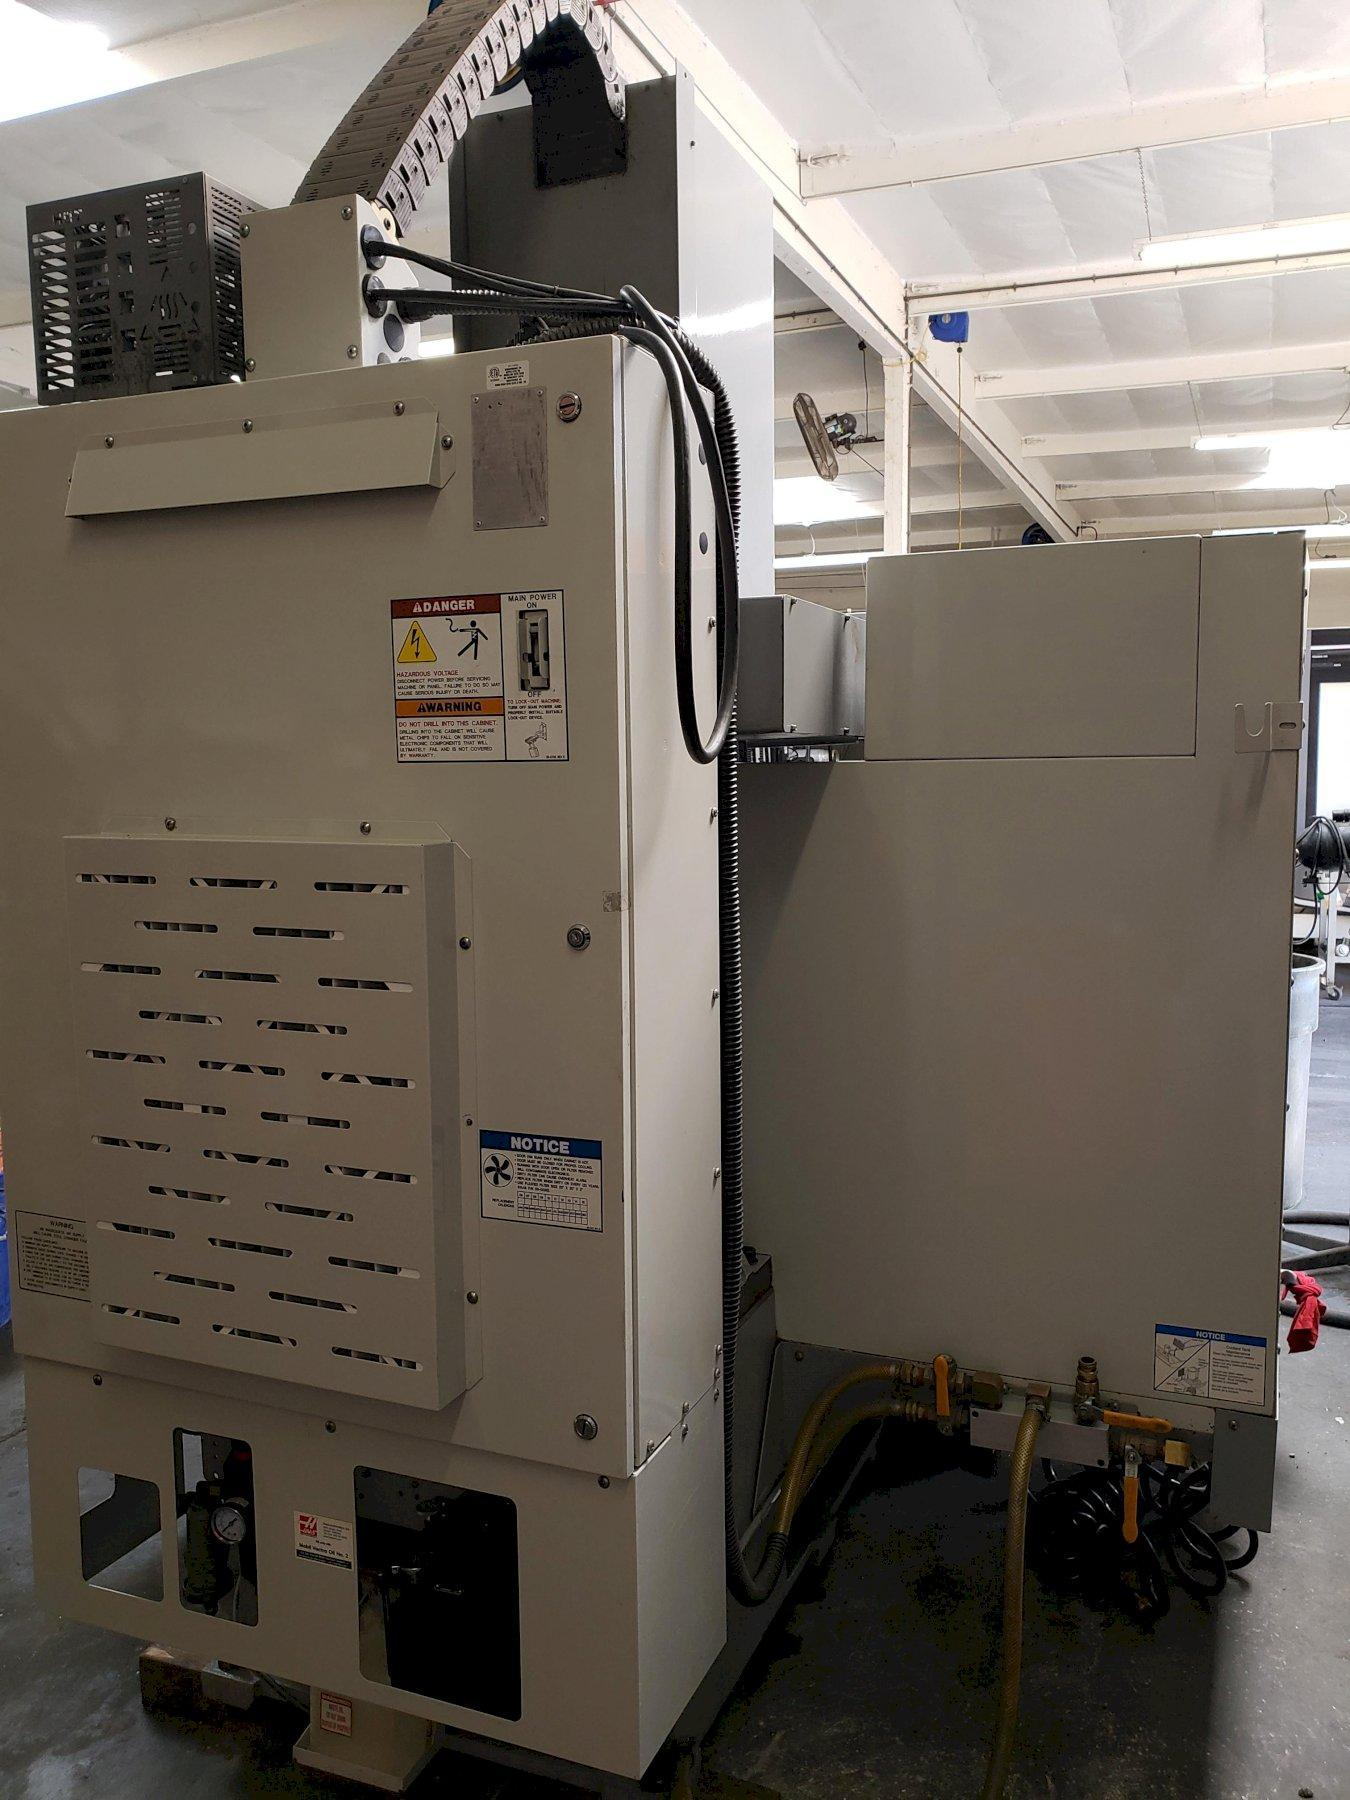 Haas VF-1B Vertical Machining Center 2007 With: Programmable Coolant, 2-Speed Gear Drive, Chip Auger, and Coolant Tank.